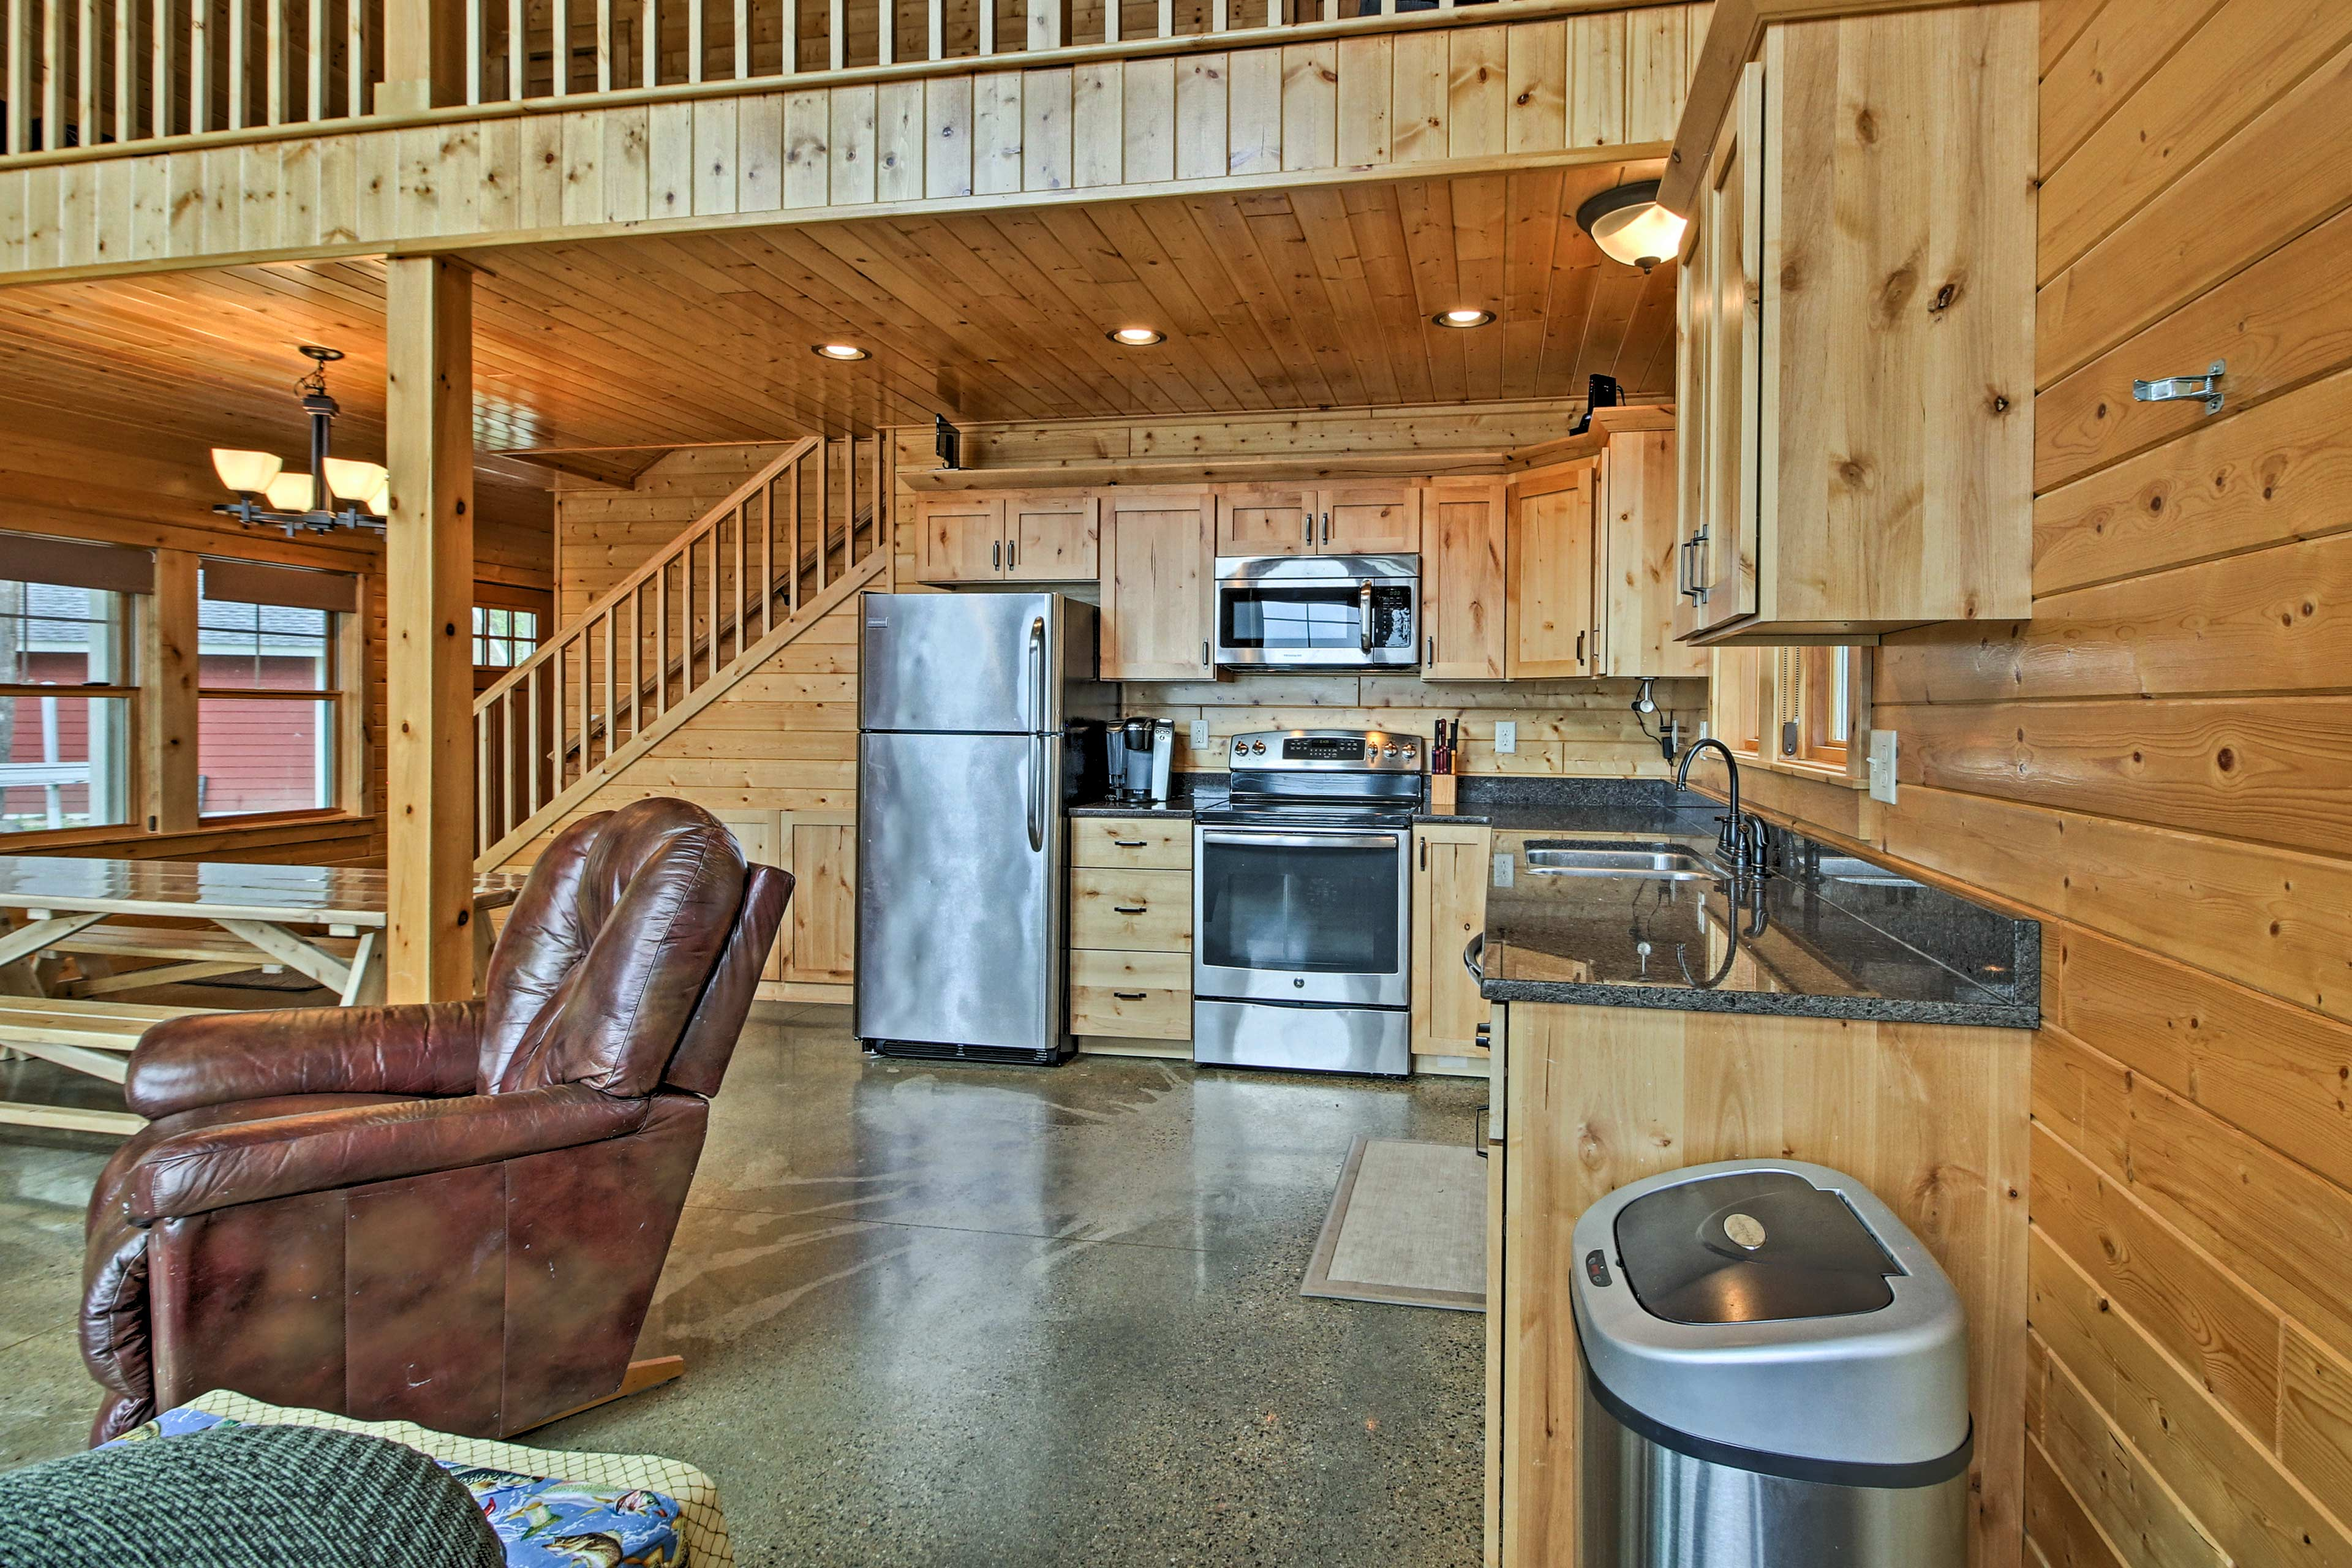 You'll love the rustic wood paneling!